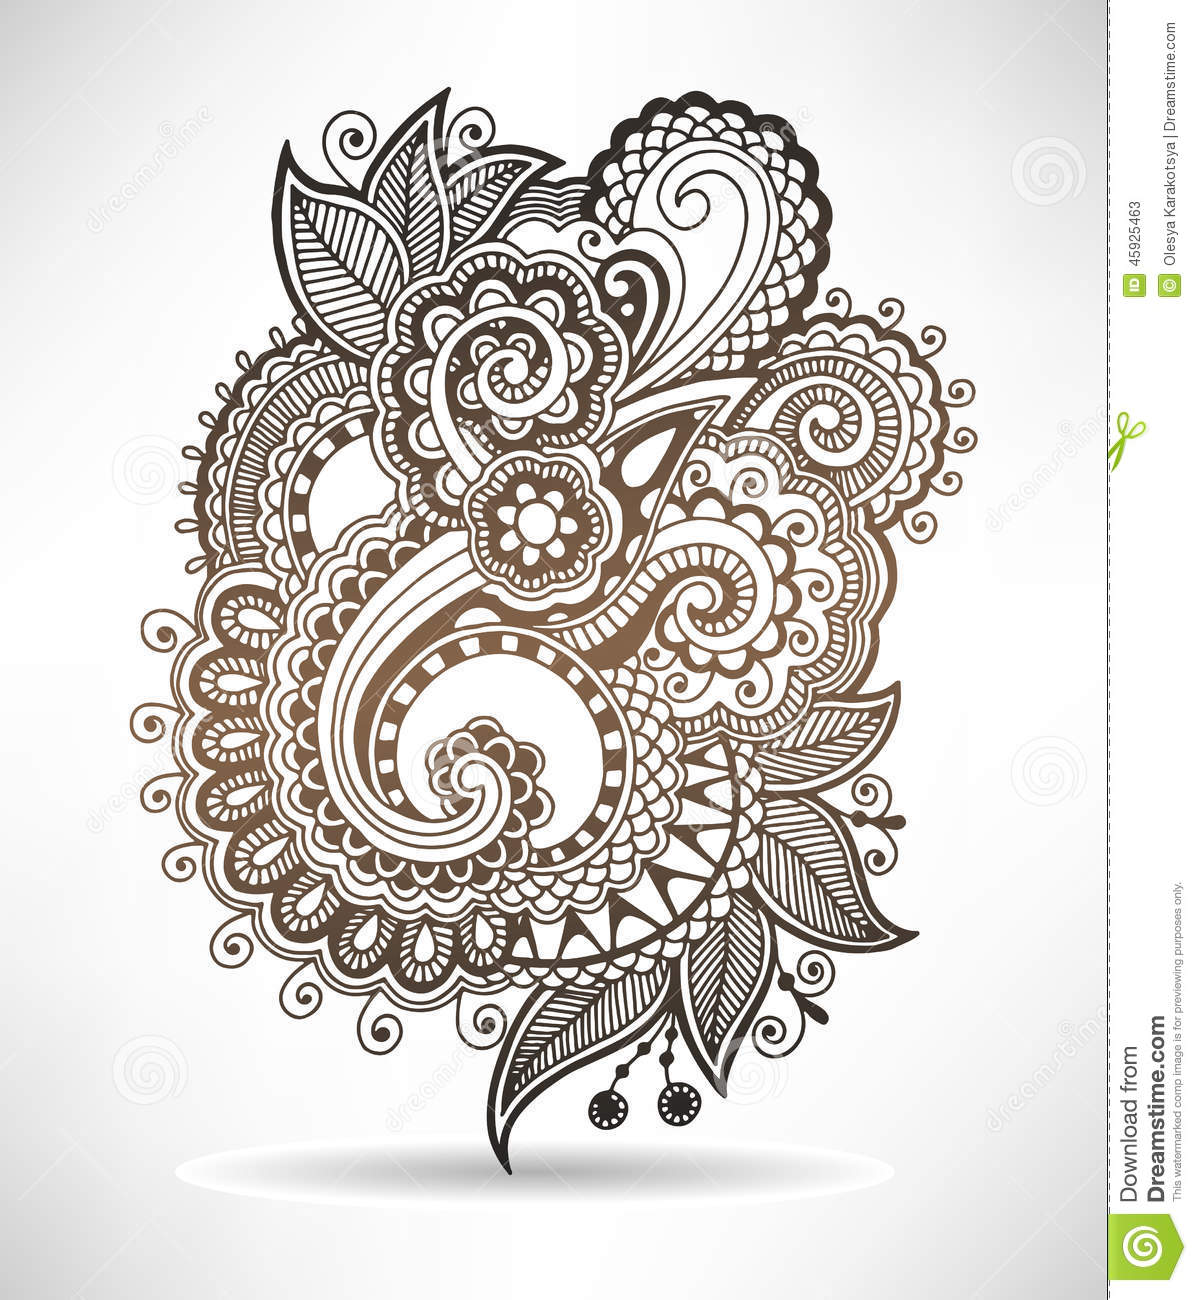 New Line Art Design : Line art ornate flower design ukrainian ethnic stock